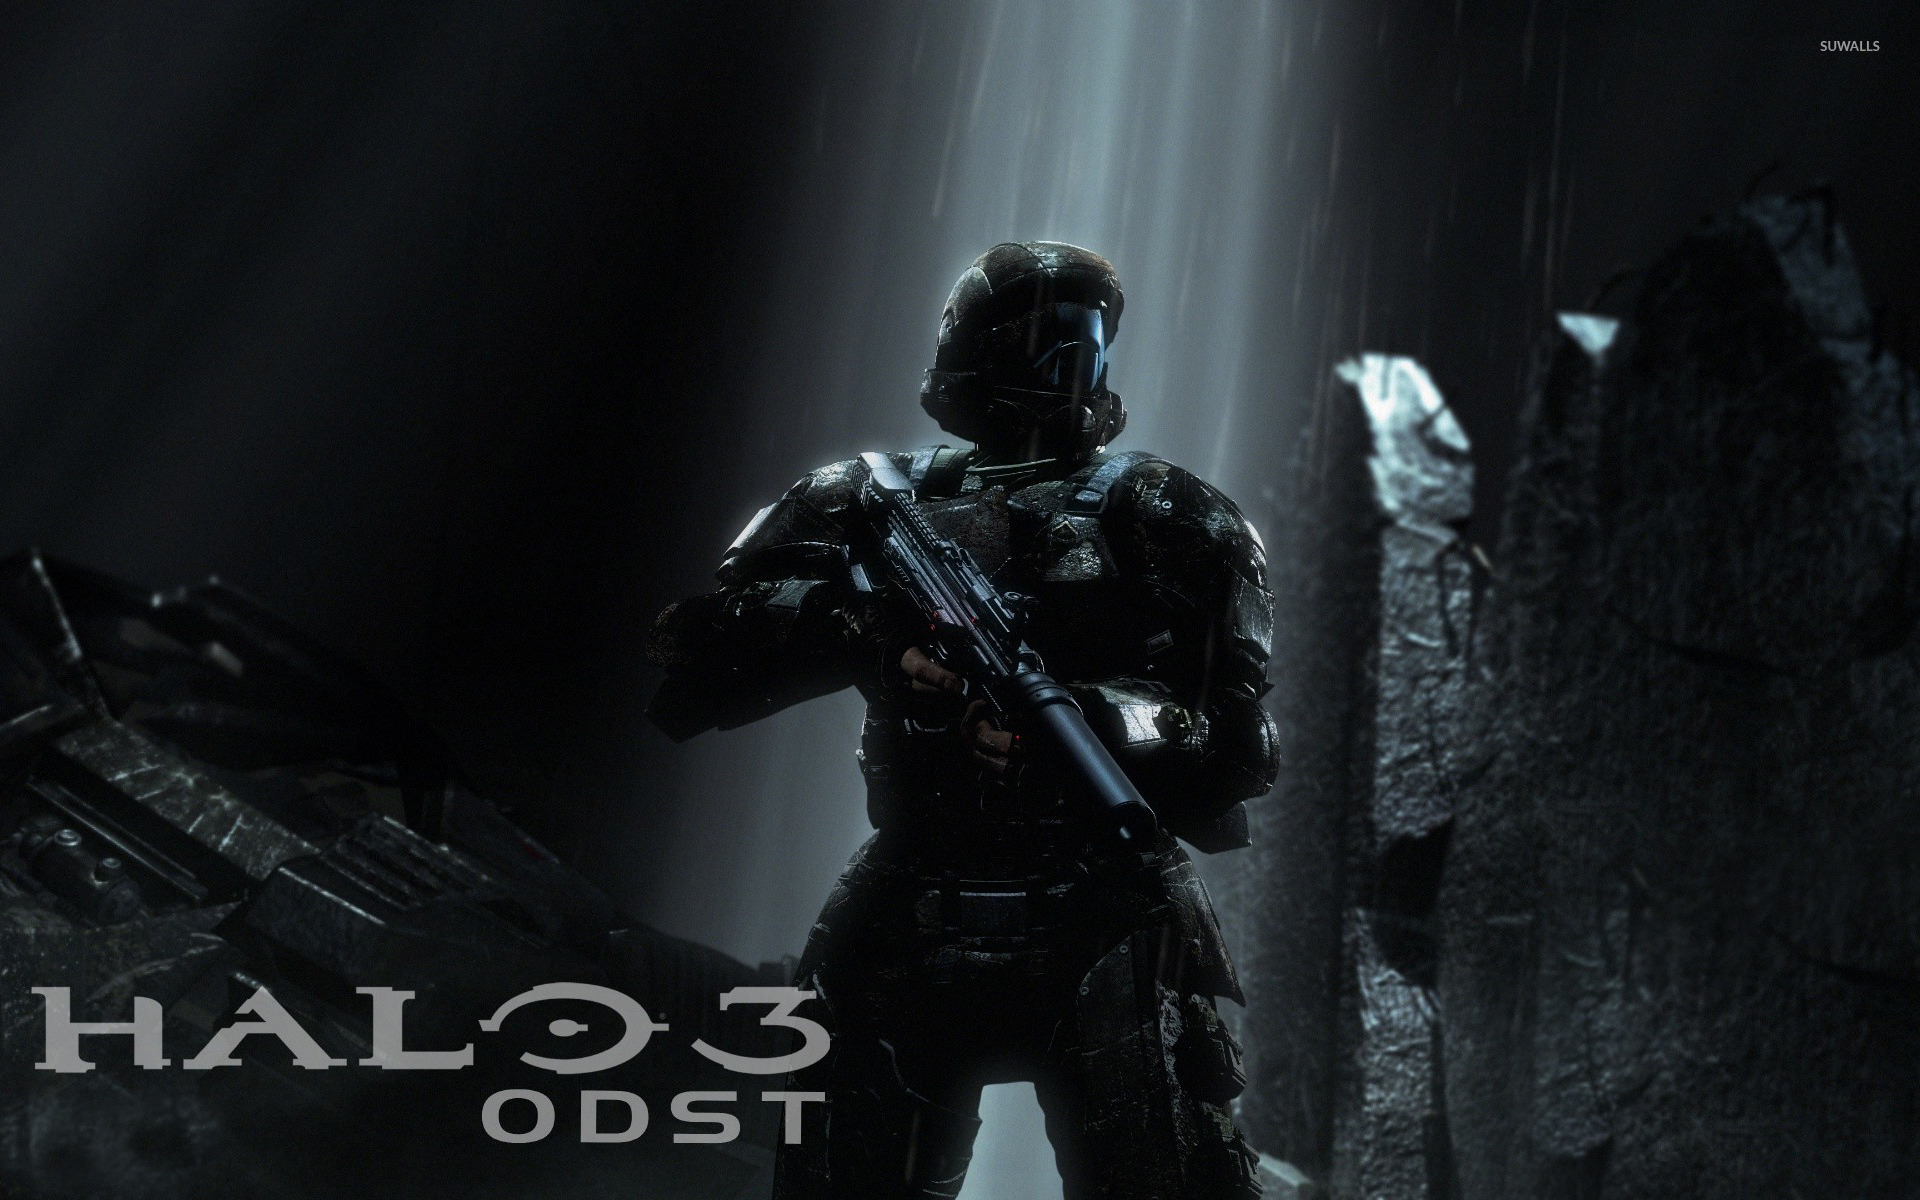 halo 3 2 wallpaper game wallpapers 12269